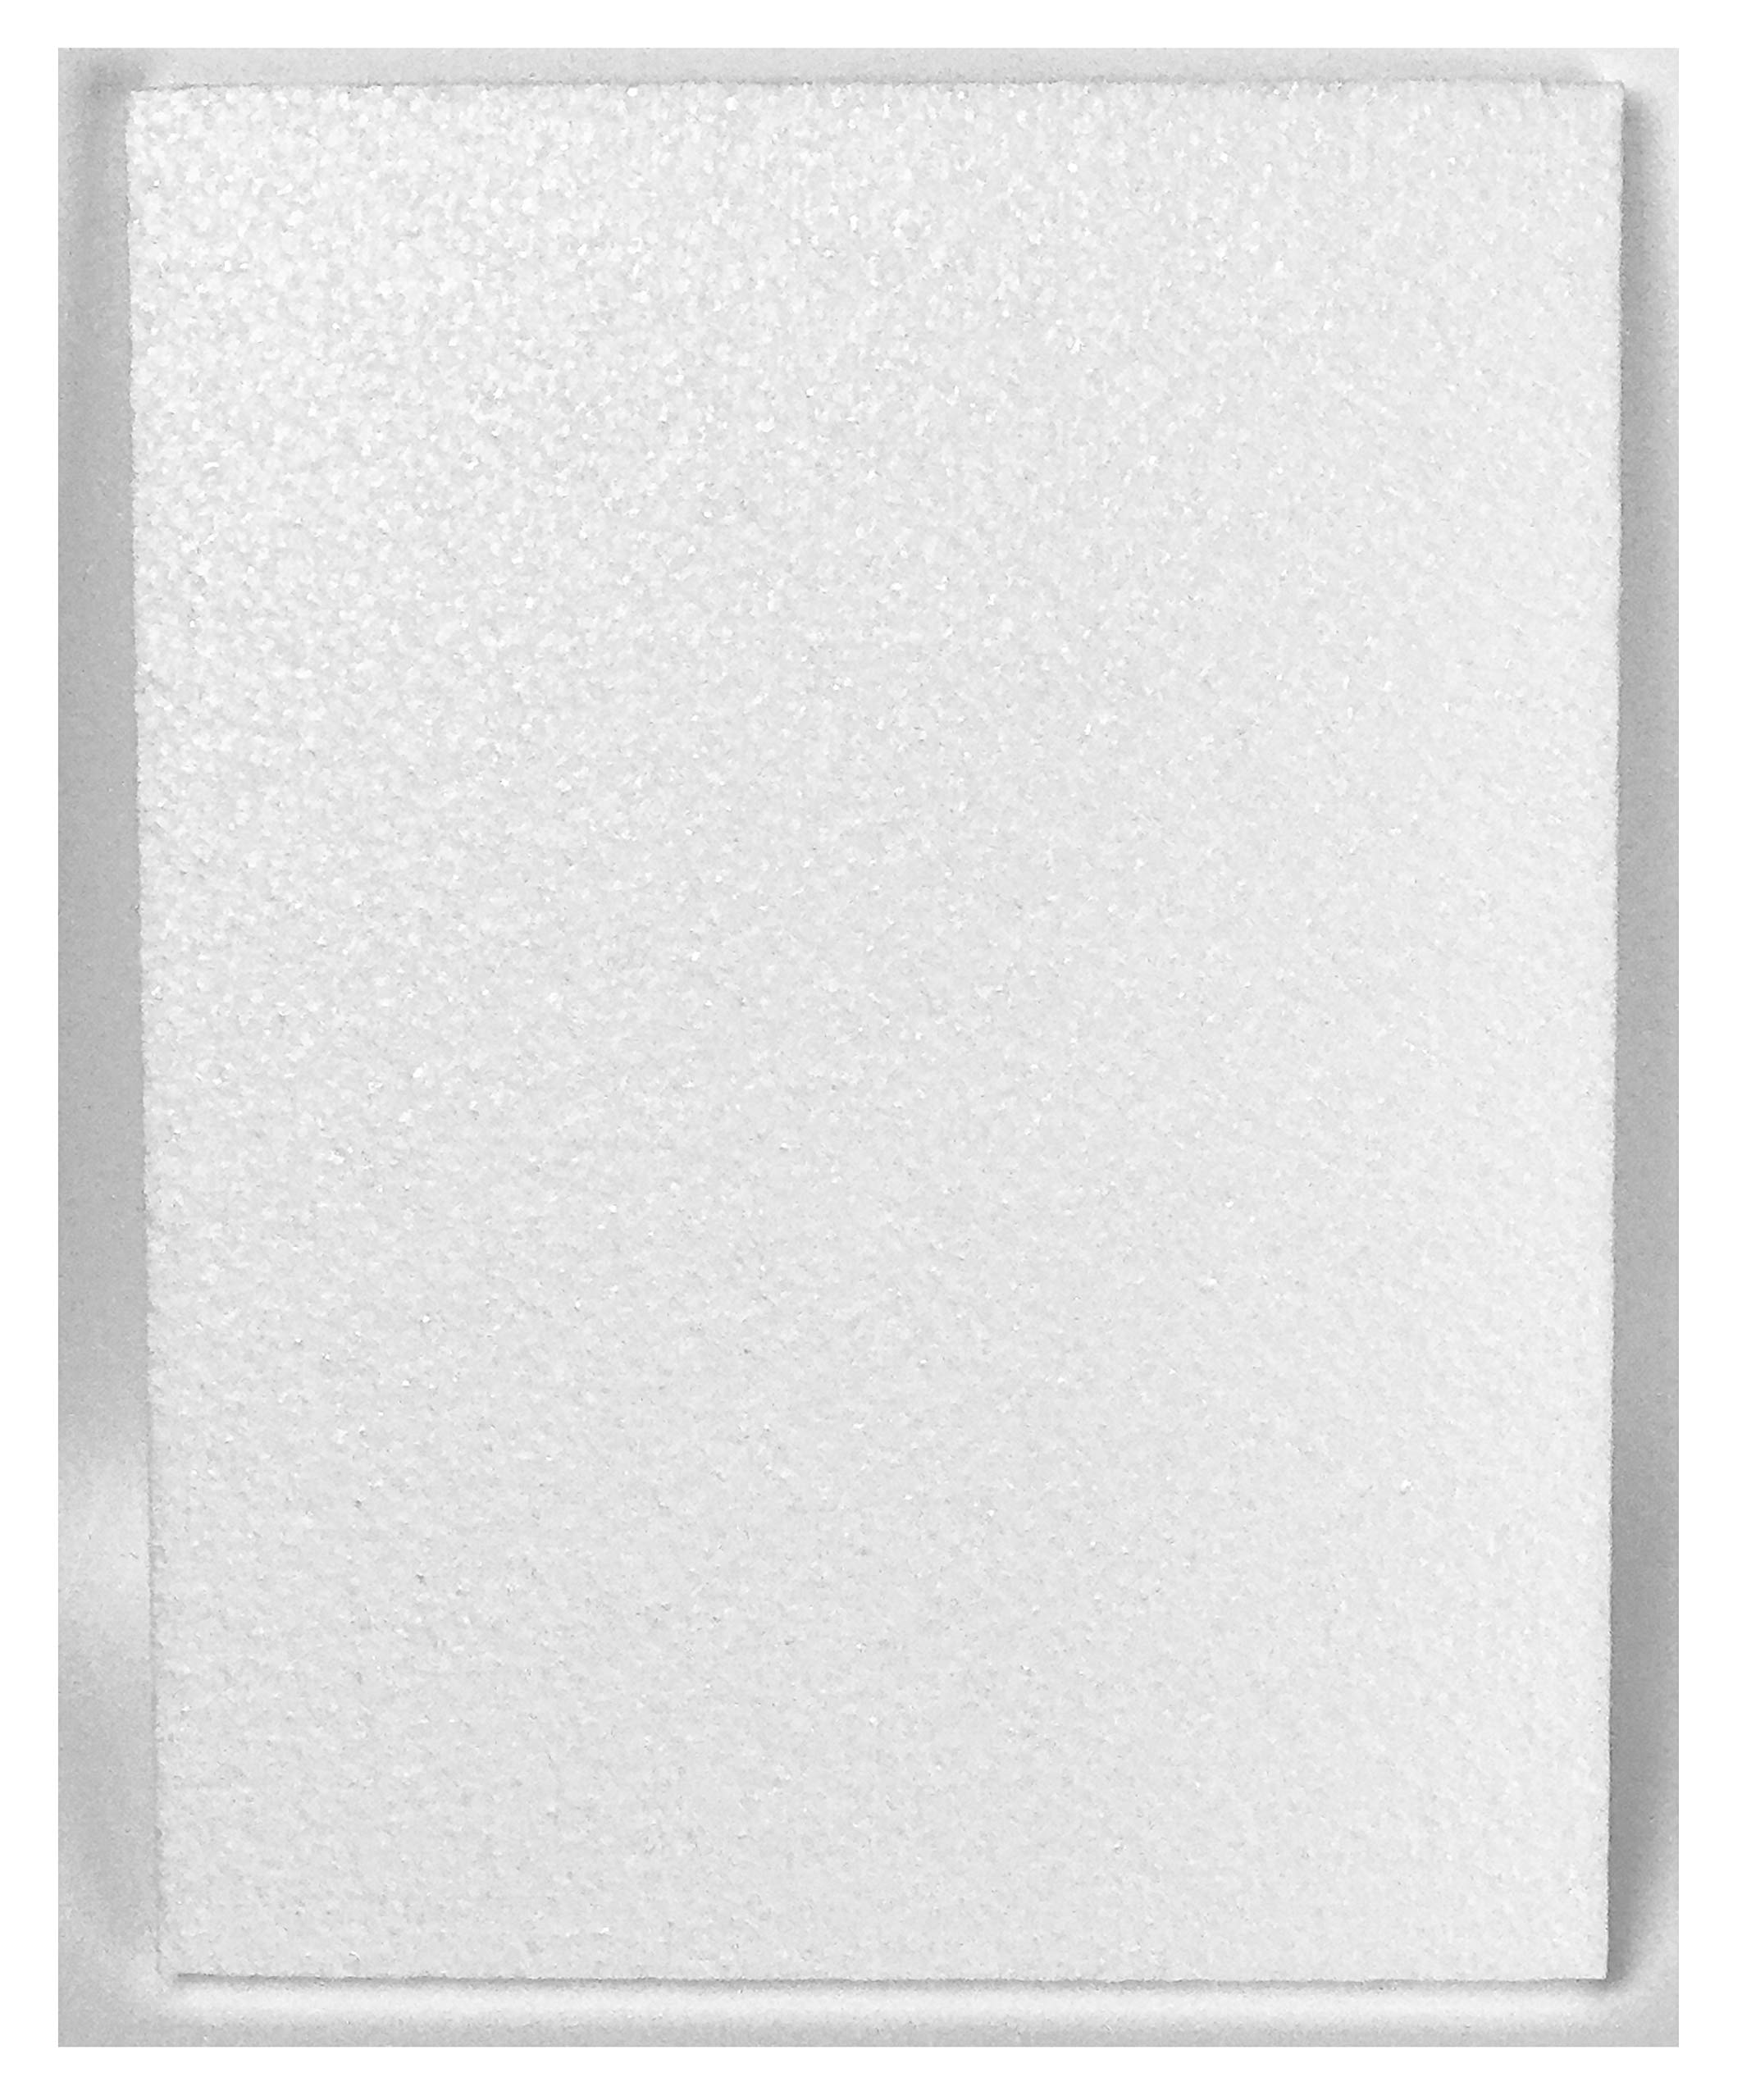 Styrofoam Sheets (8 1/2 X 11 X 1/4 inches) - White (Lot of 100) by Master451 (Image #2)